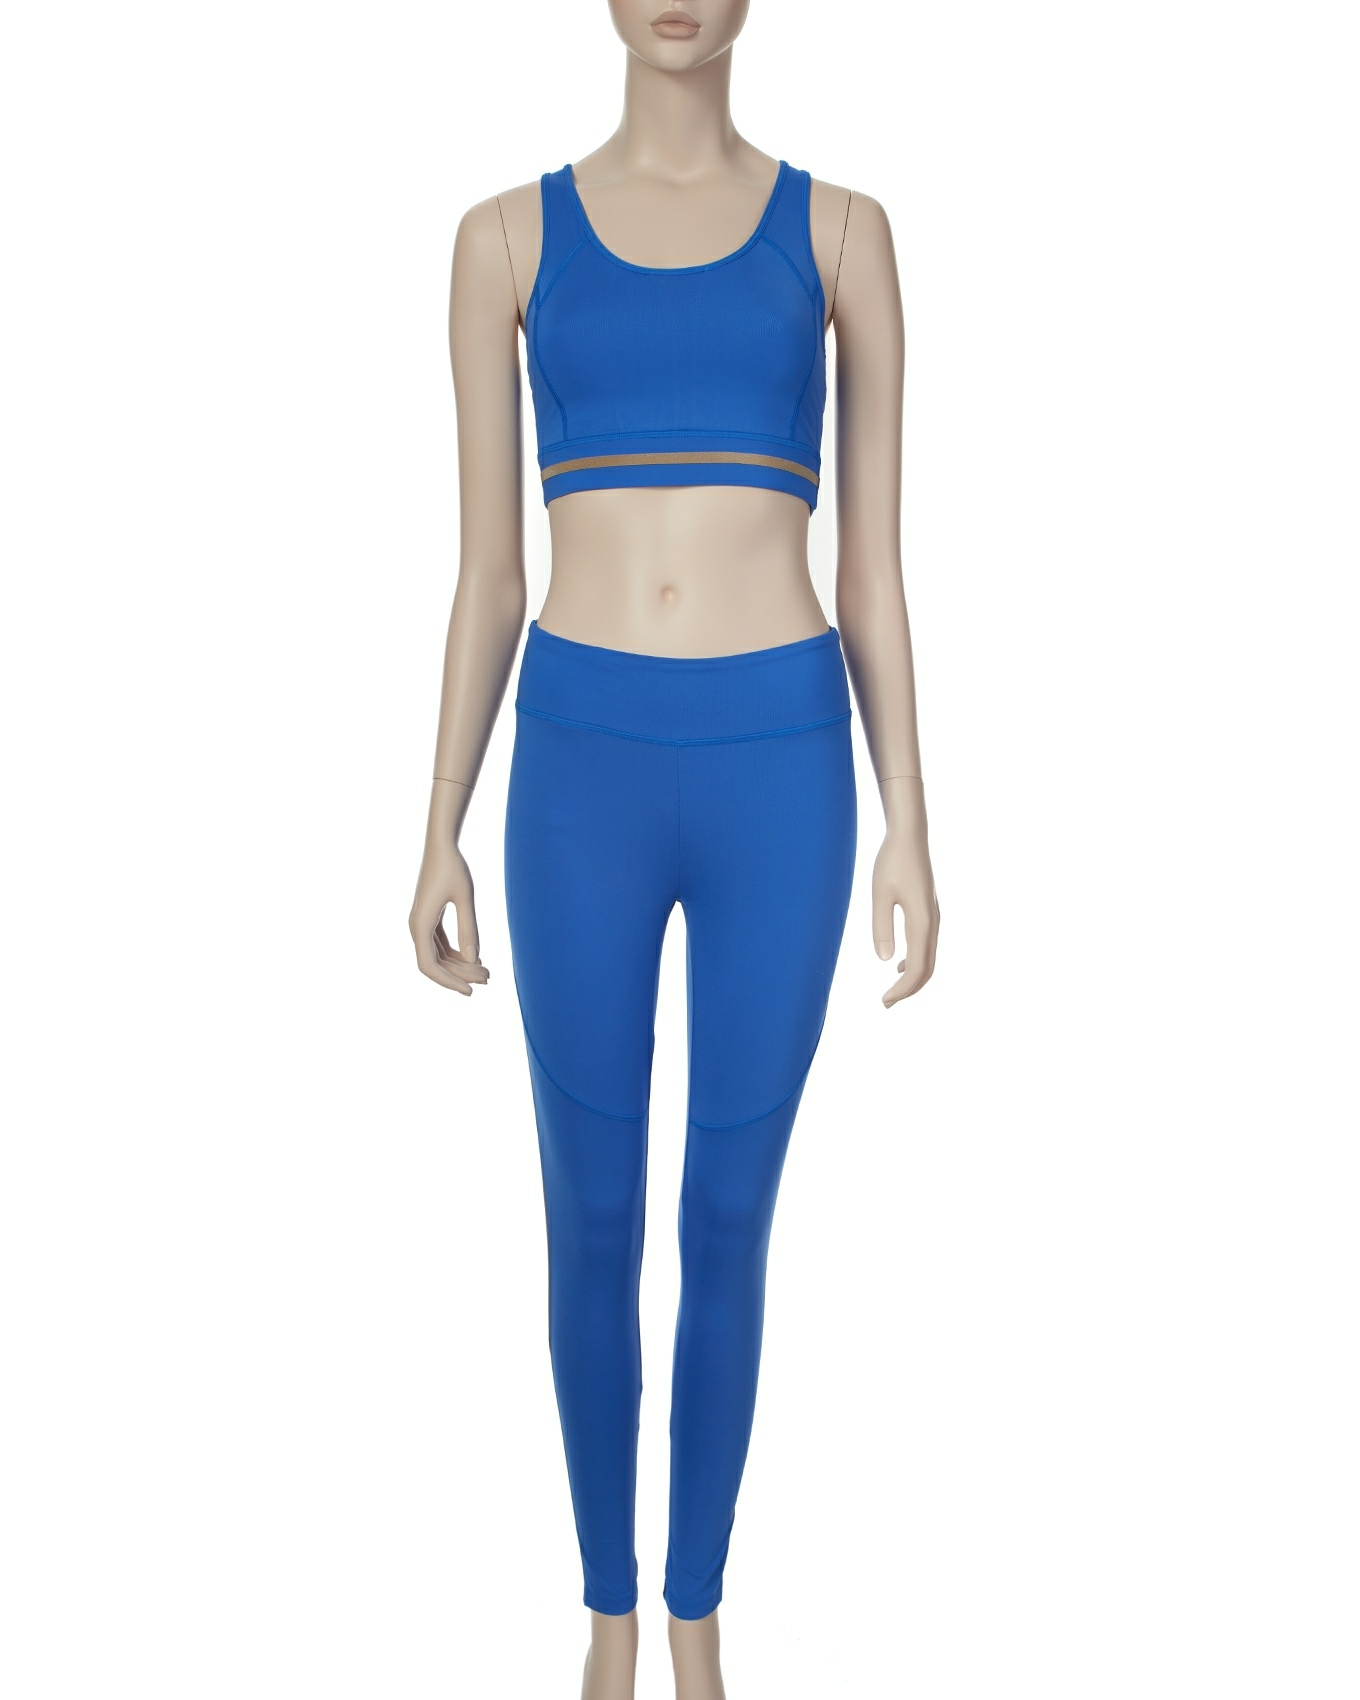 Tights CLARY blue | BOGNER Fire + Ice